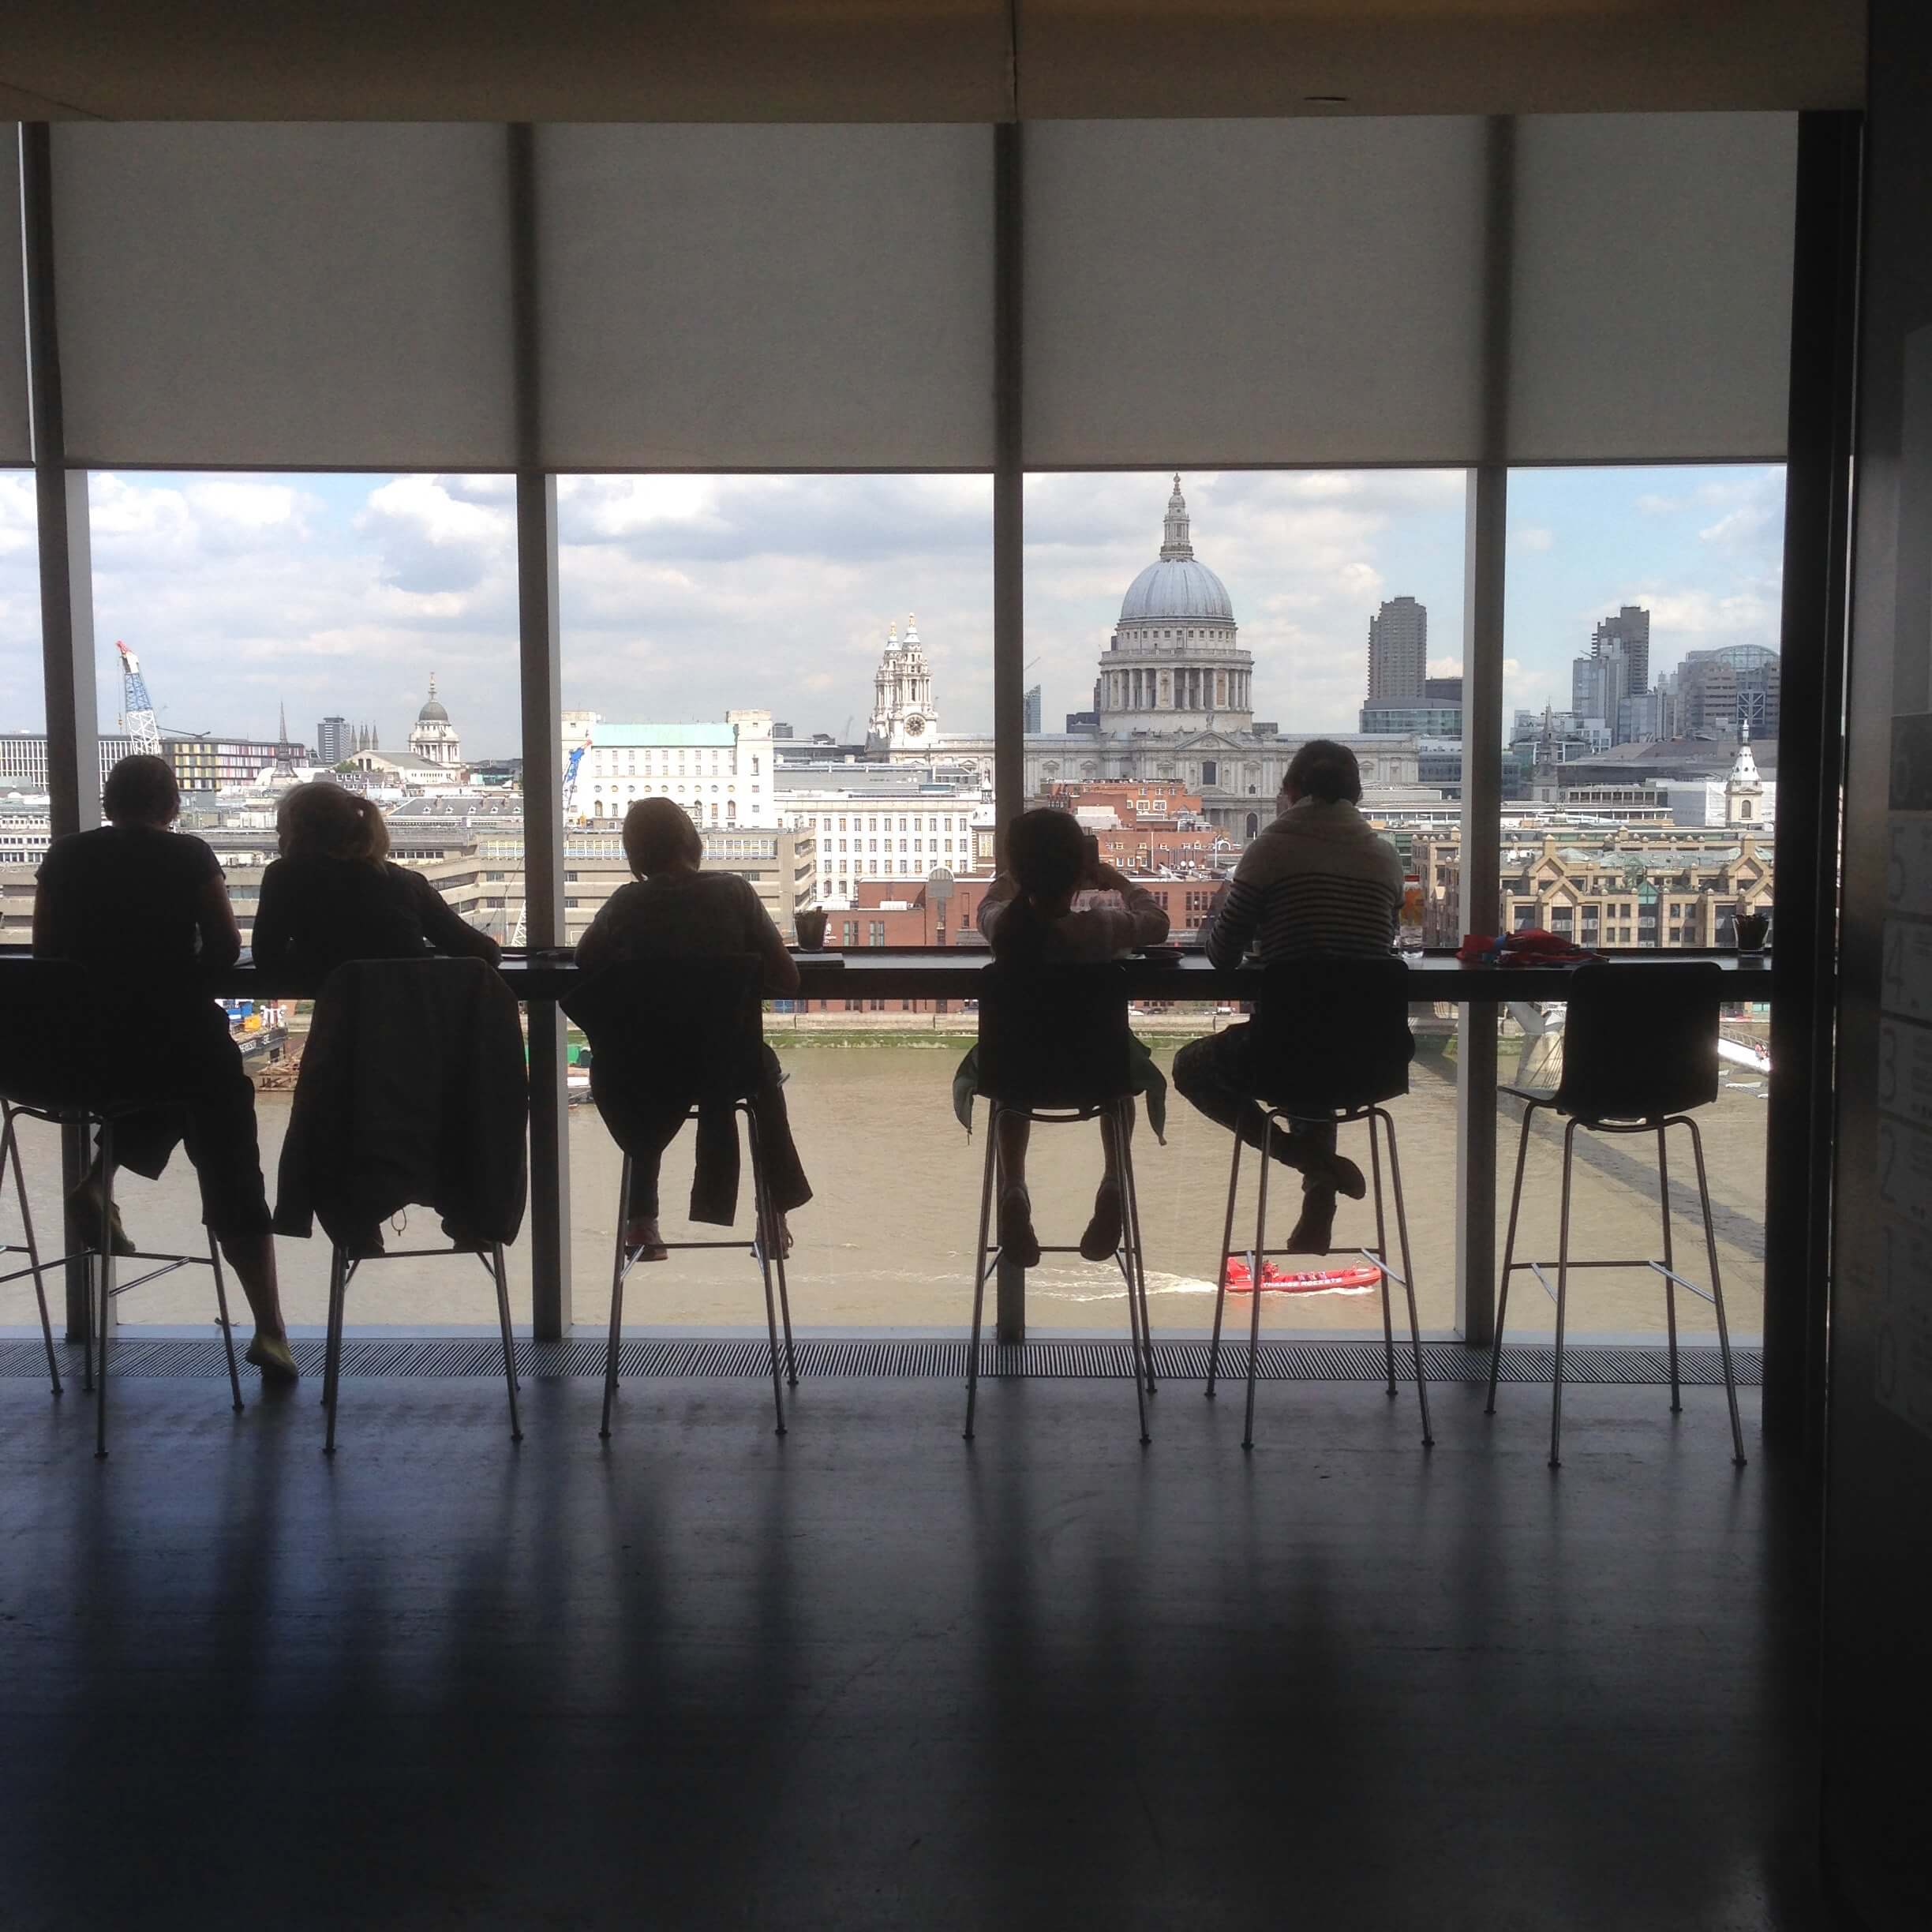 London skyline from Tate Modern overlooking our direct response marketing test site